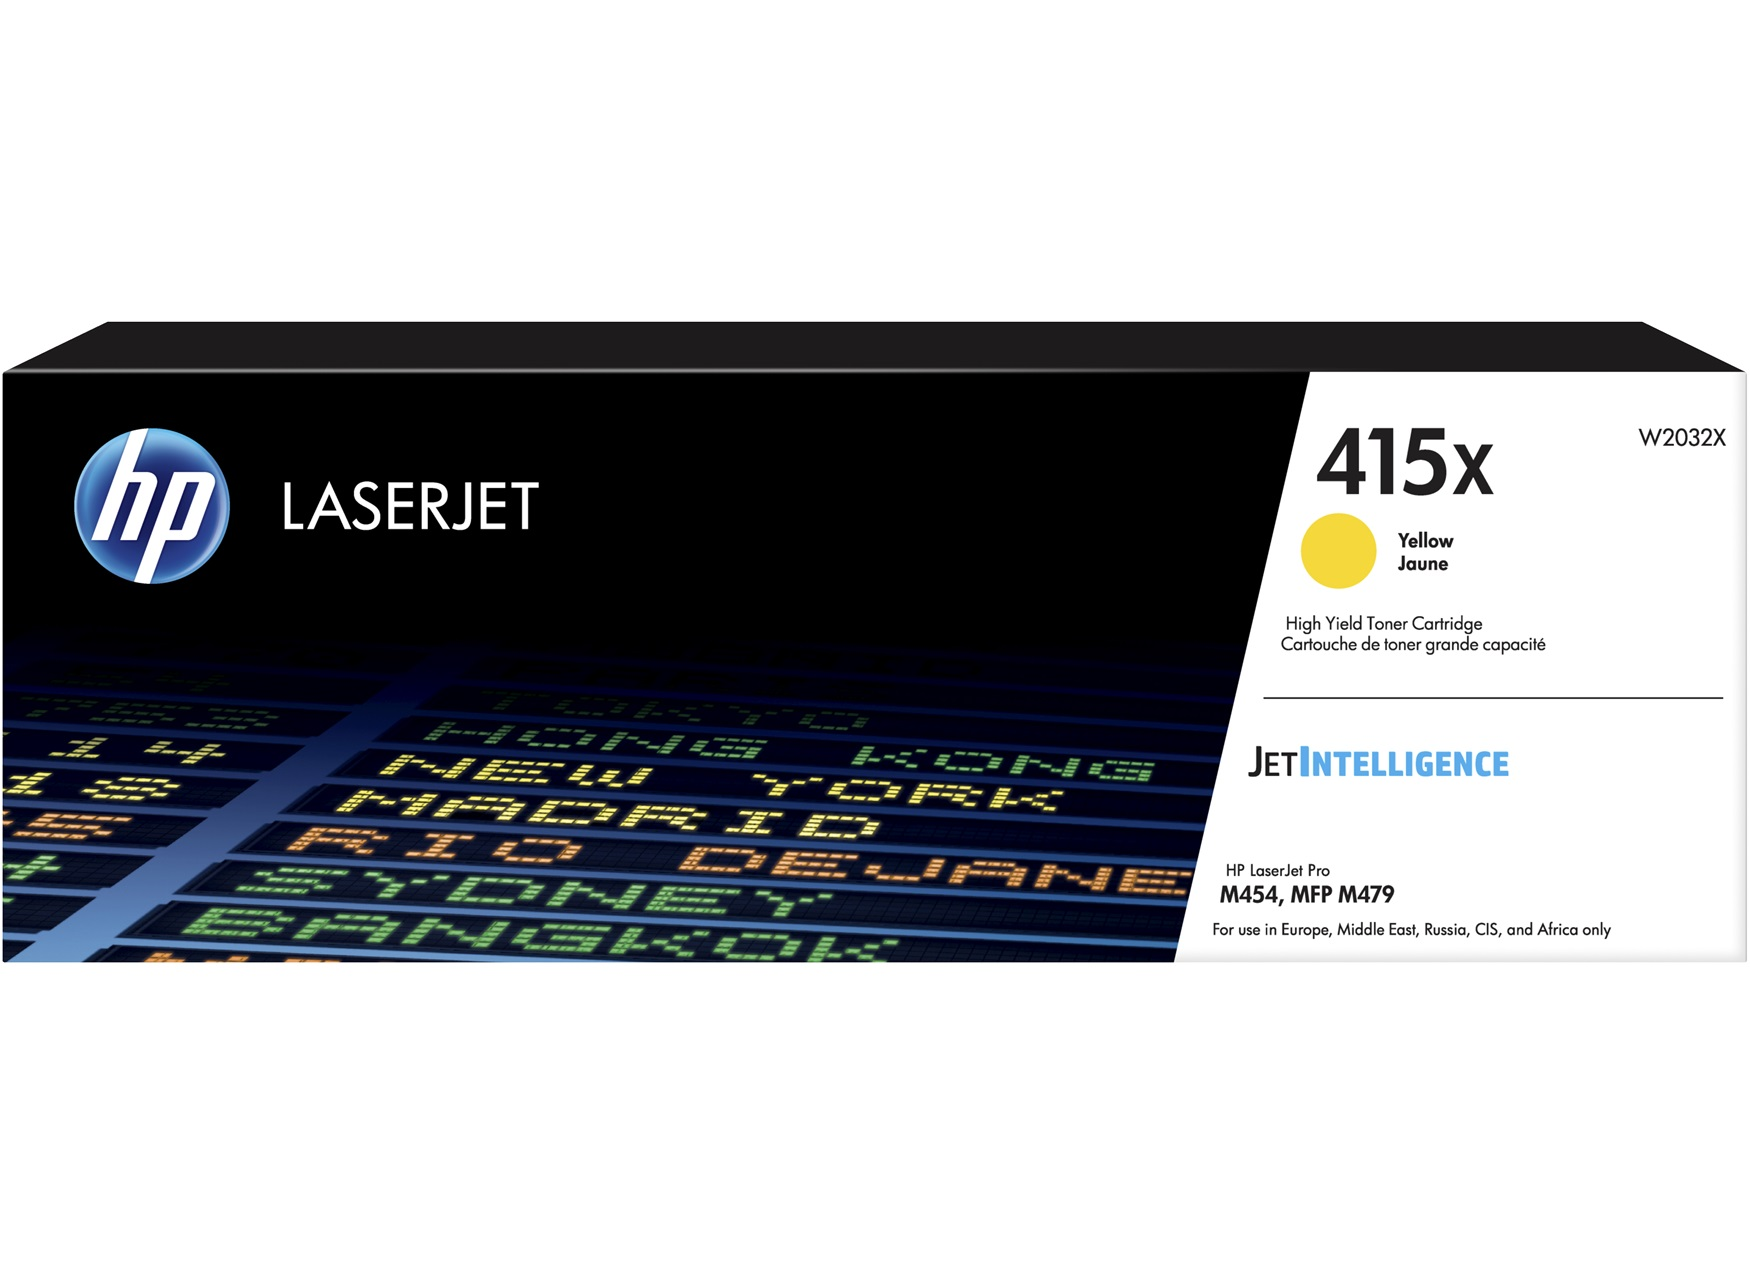 HP 415X Yellow LaserJet Toner Cartridge, W2032X